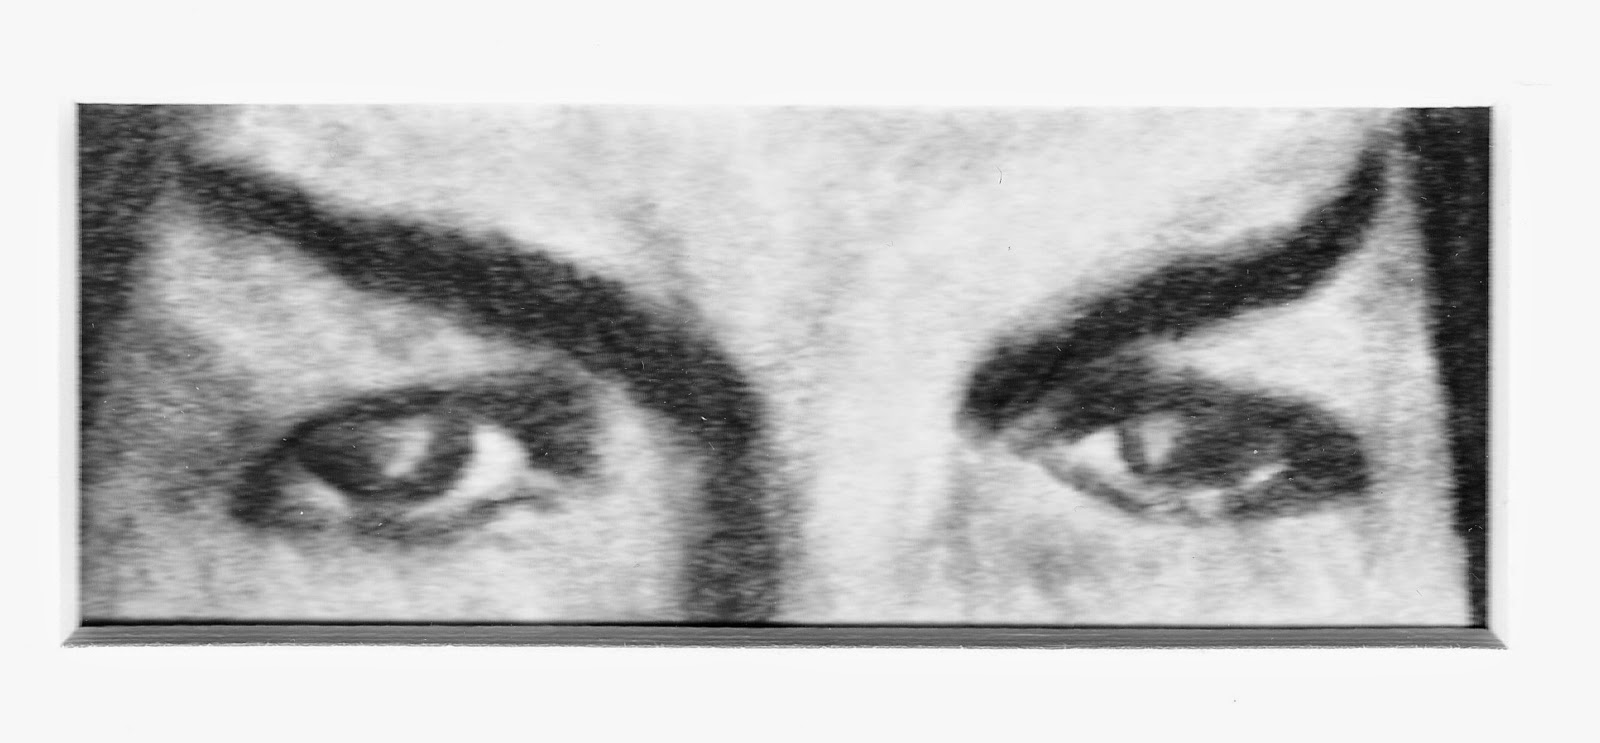 EYES OF MR. SPOCK - Charcoal and Conte on Paper. 1.5x3 inches, circa 2014 by F. Lennox Campello